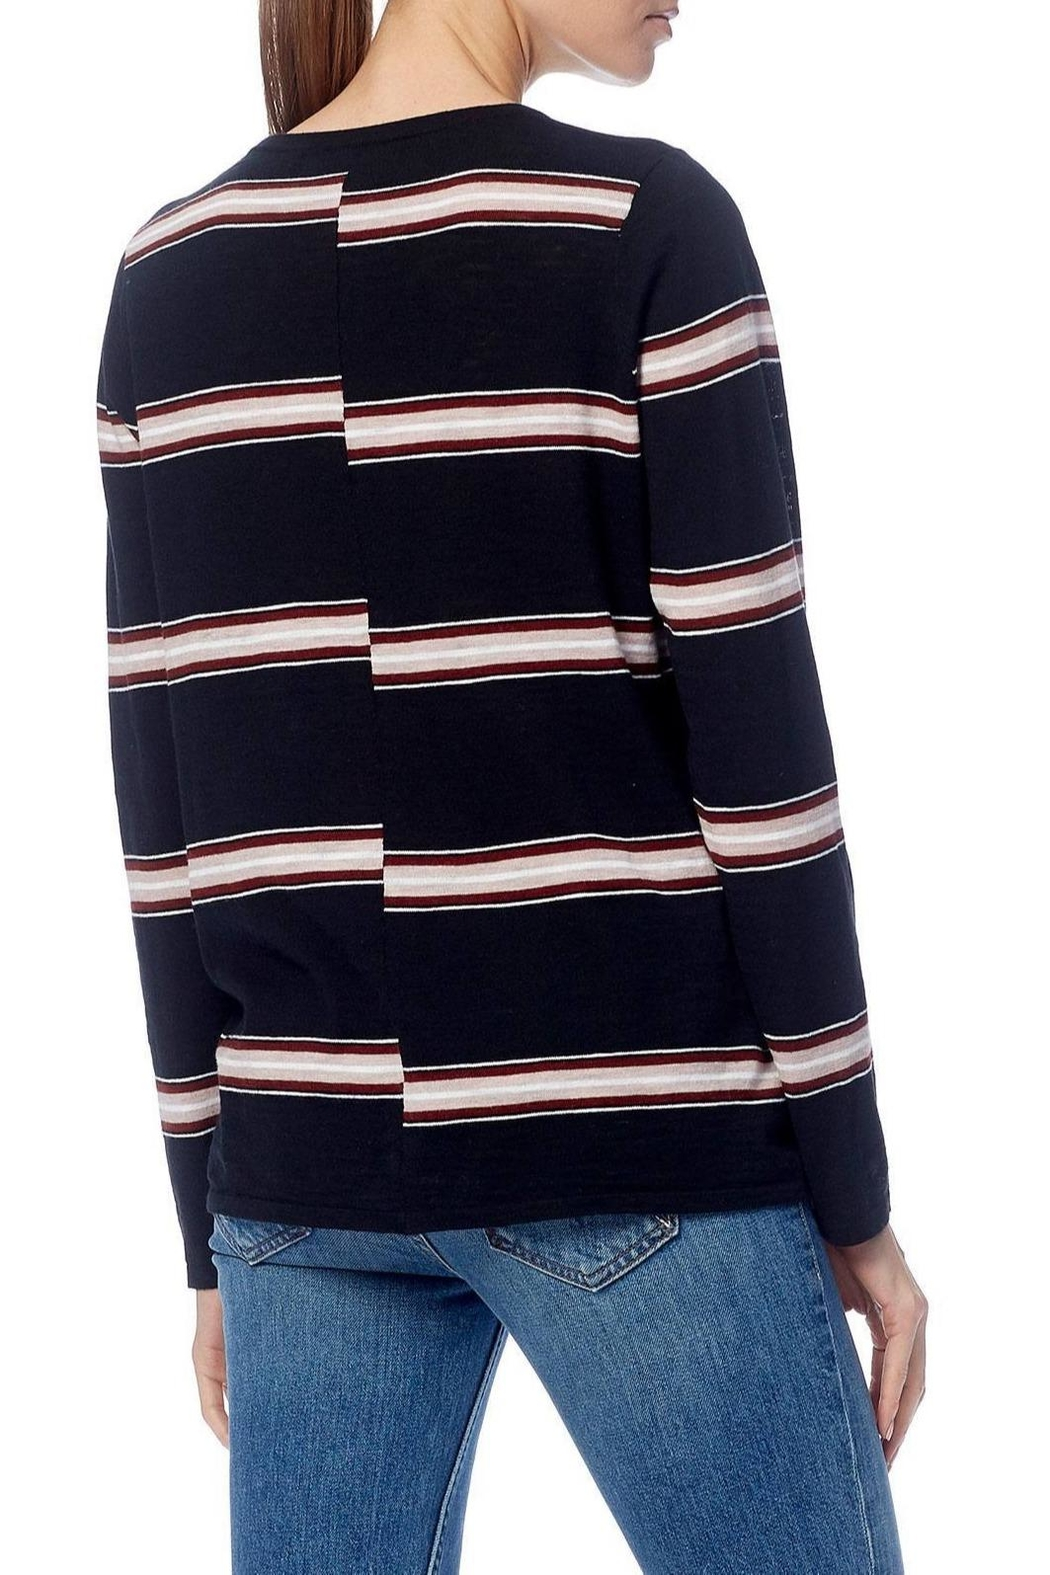 360 Cashmere Brianne Sweater - Front Full Image